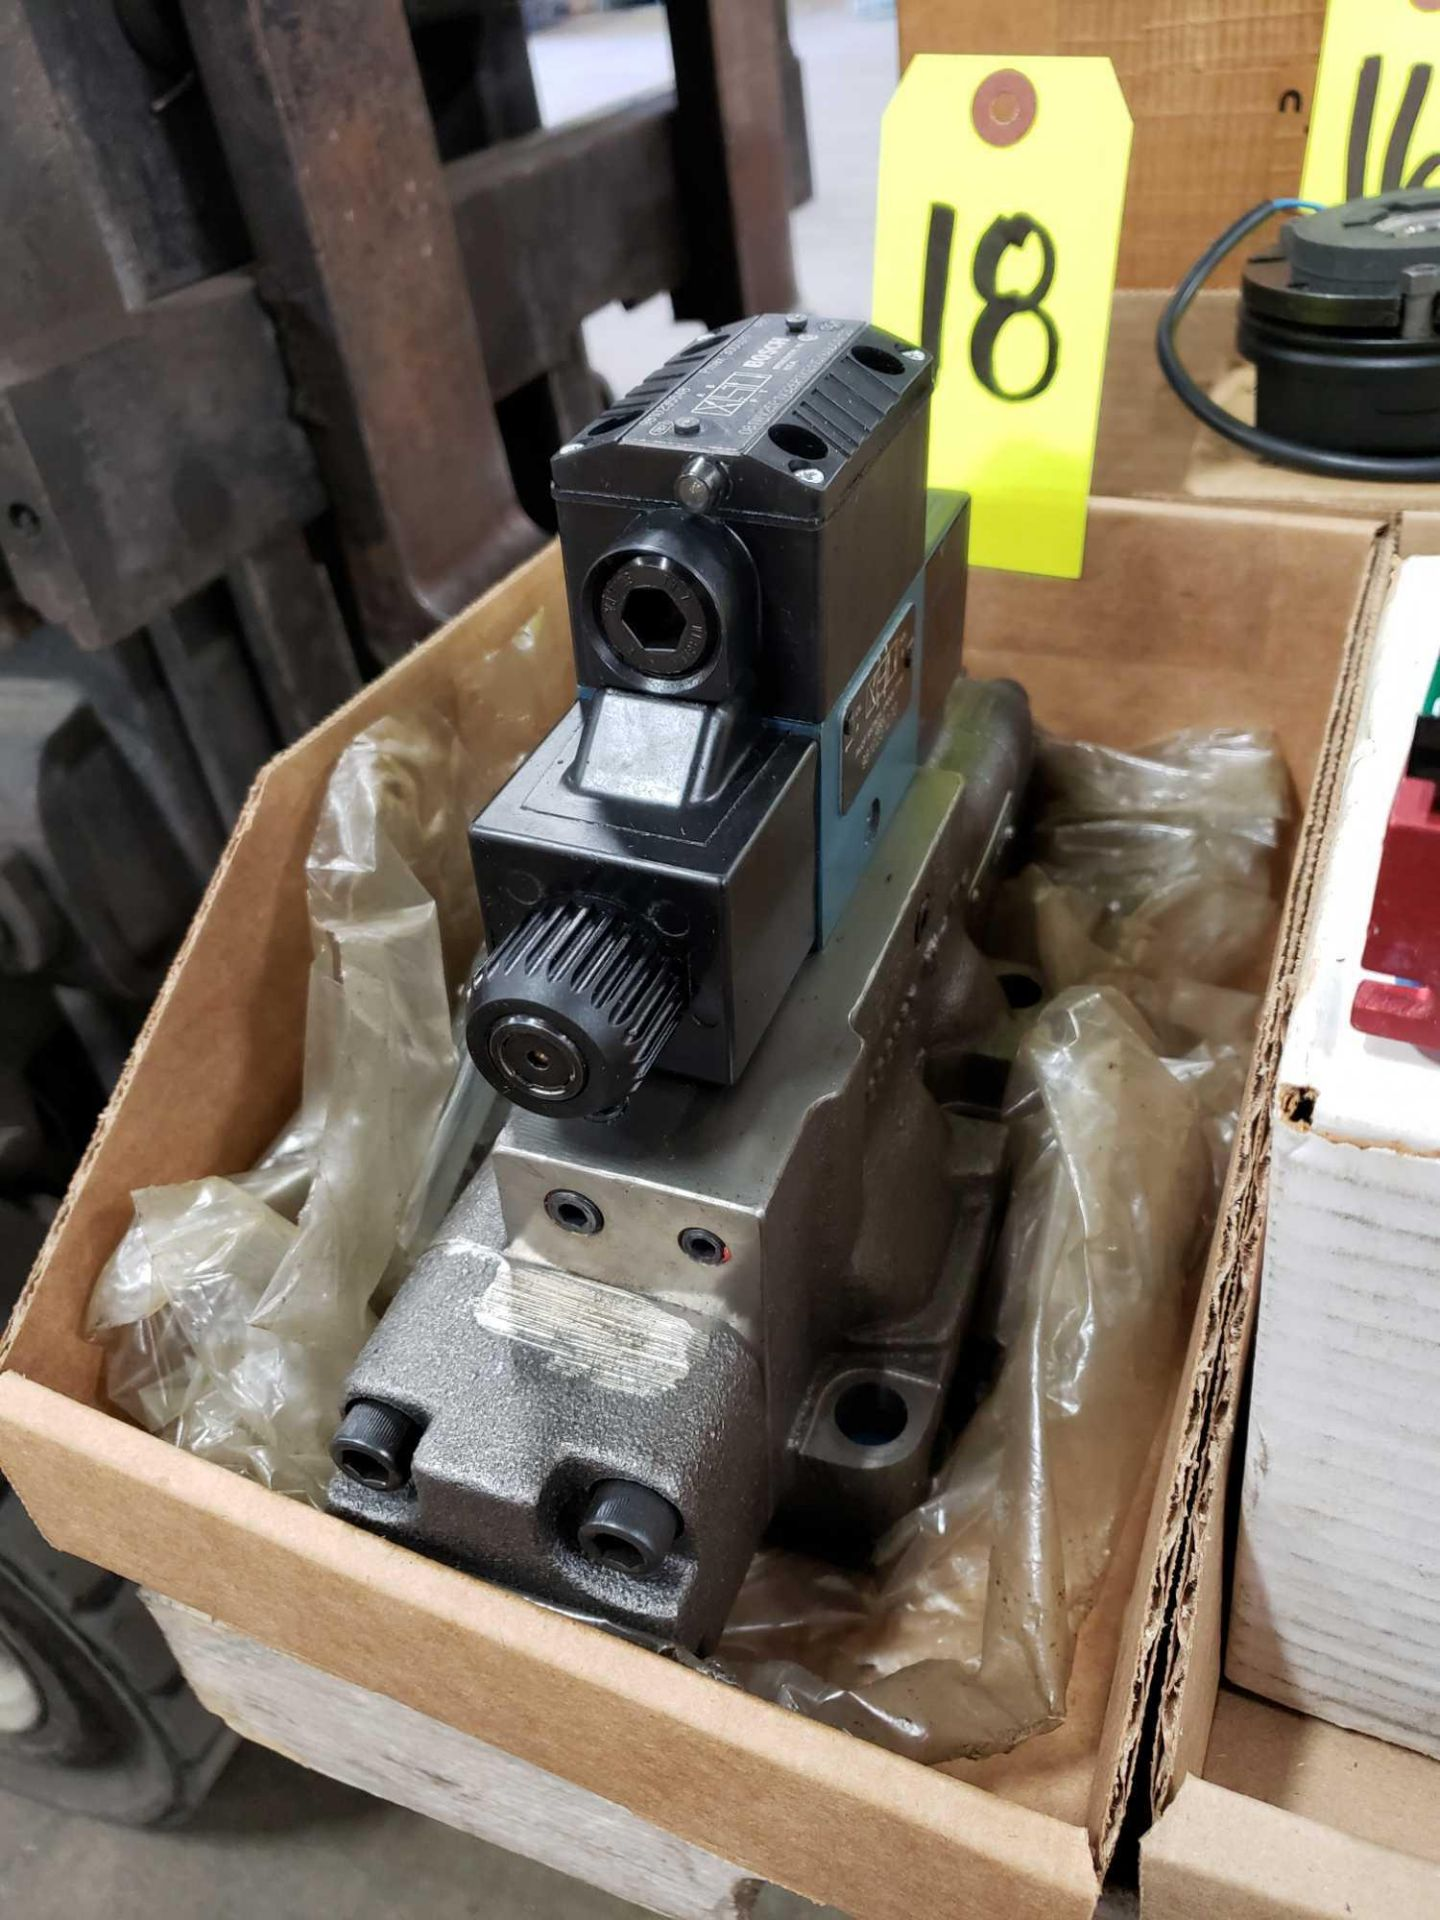 Lot 18 - Bosch hydraulic valve model 081WV25P1V326PTKE115/60D51/55 and 9810231270. Appears new old stock.